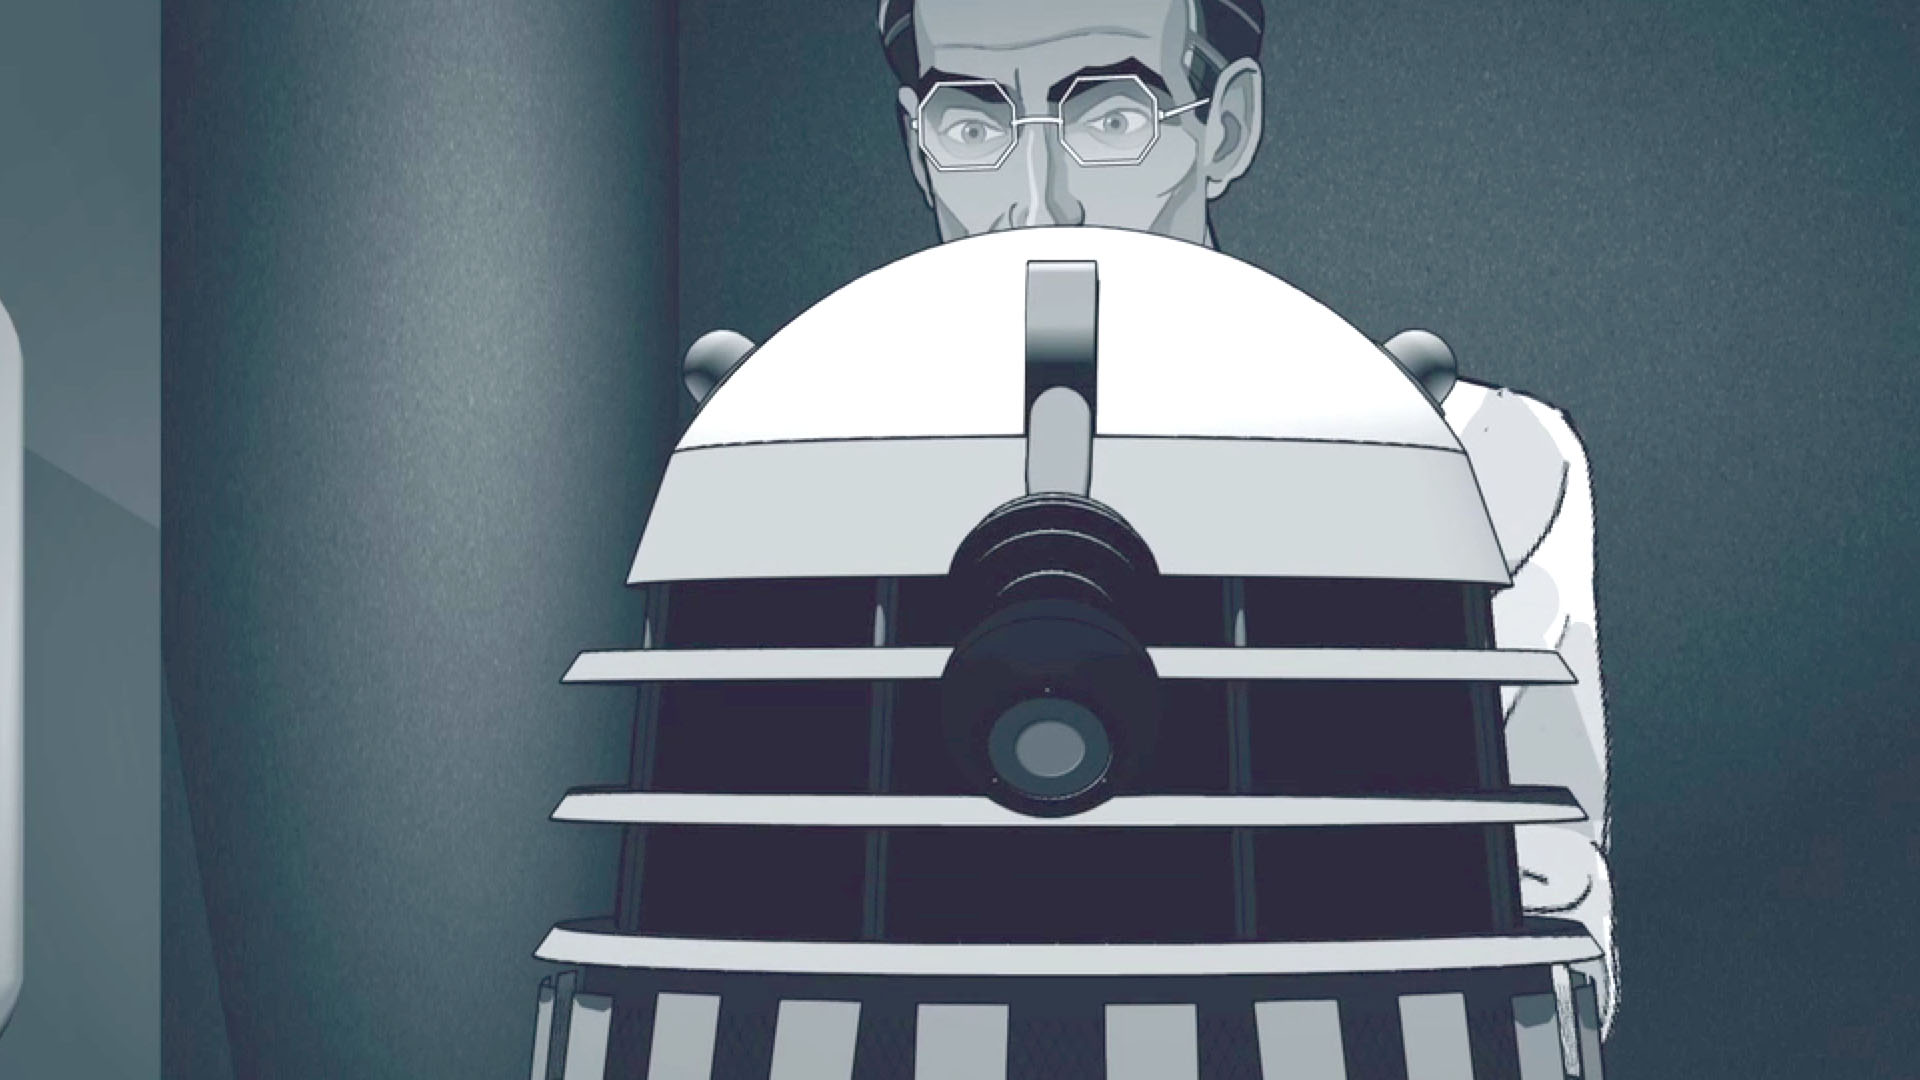 https://i2.wp.com/thedoctorwhocompanion.com/wp-content/uploads/2016/10/Power-of-the-Daleks-animation-Lesterson.jpg